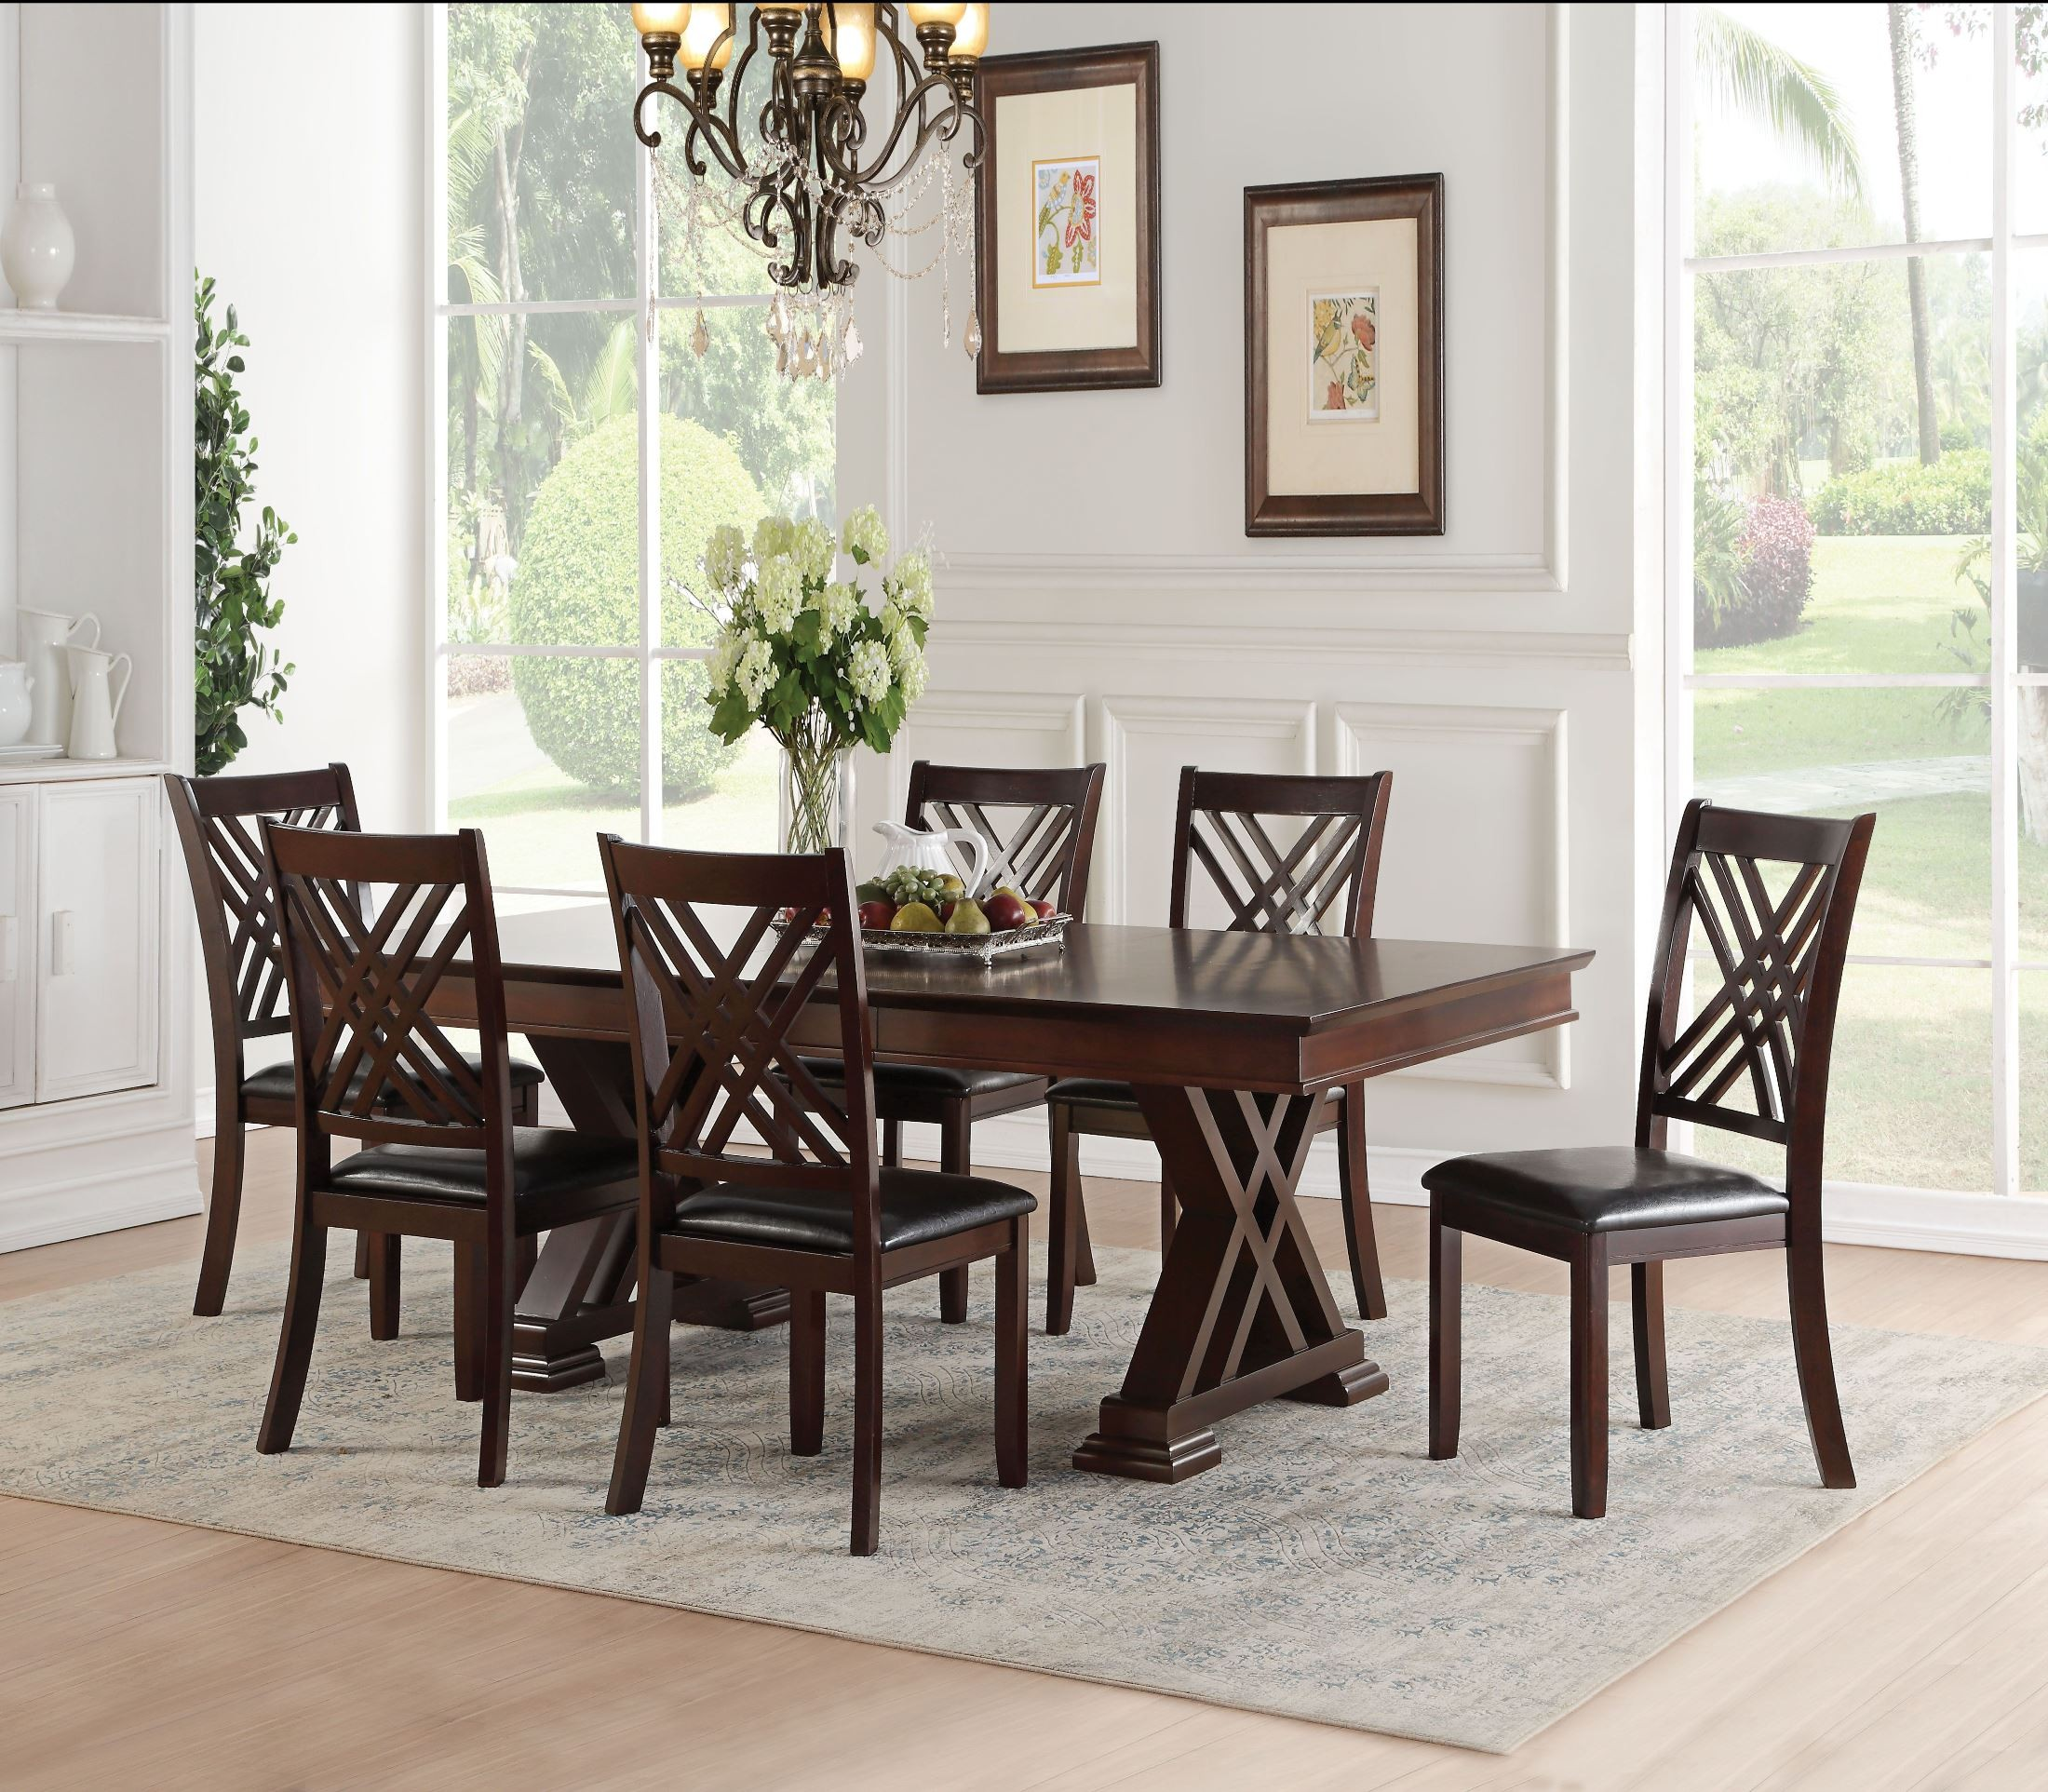 Acme Katrien Espresso Dining Room Set Katrien Collection 6